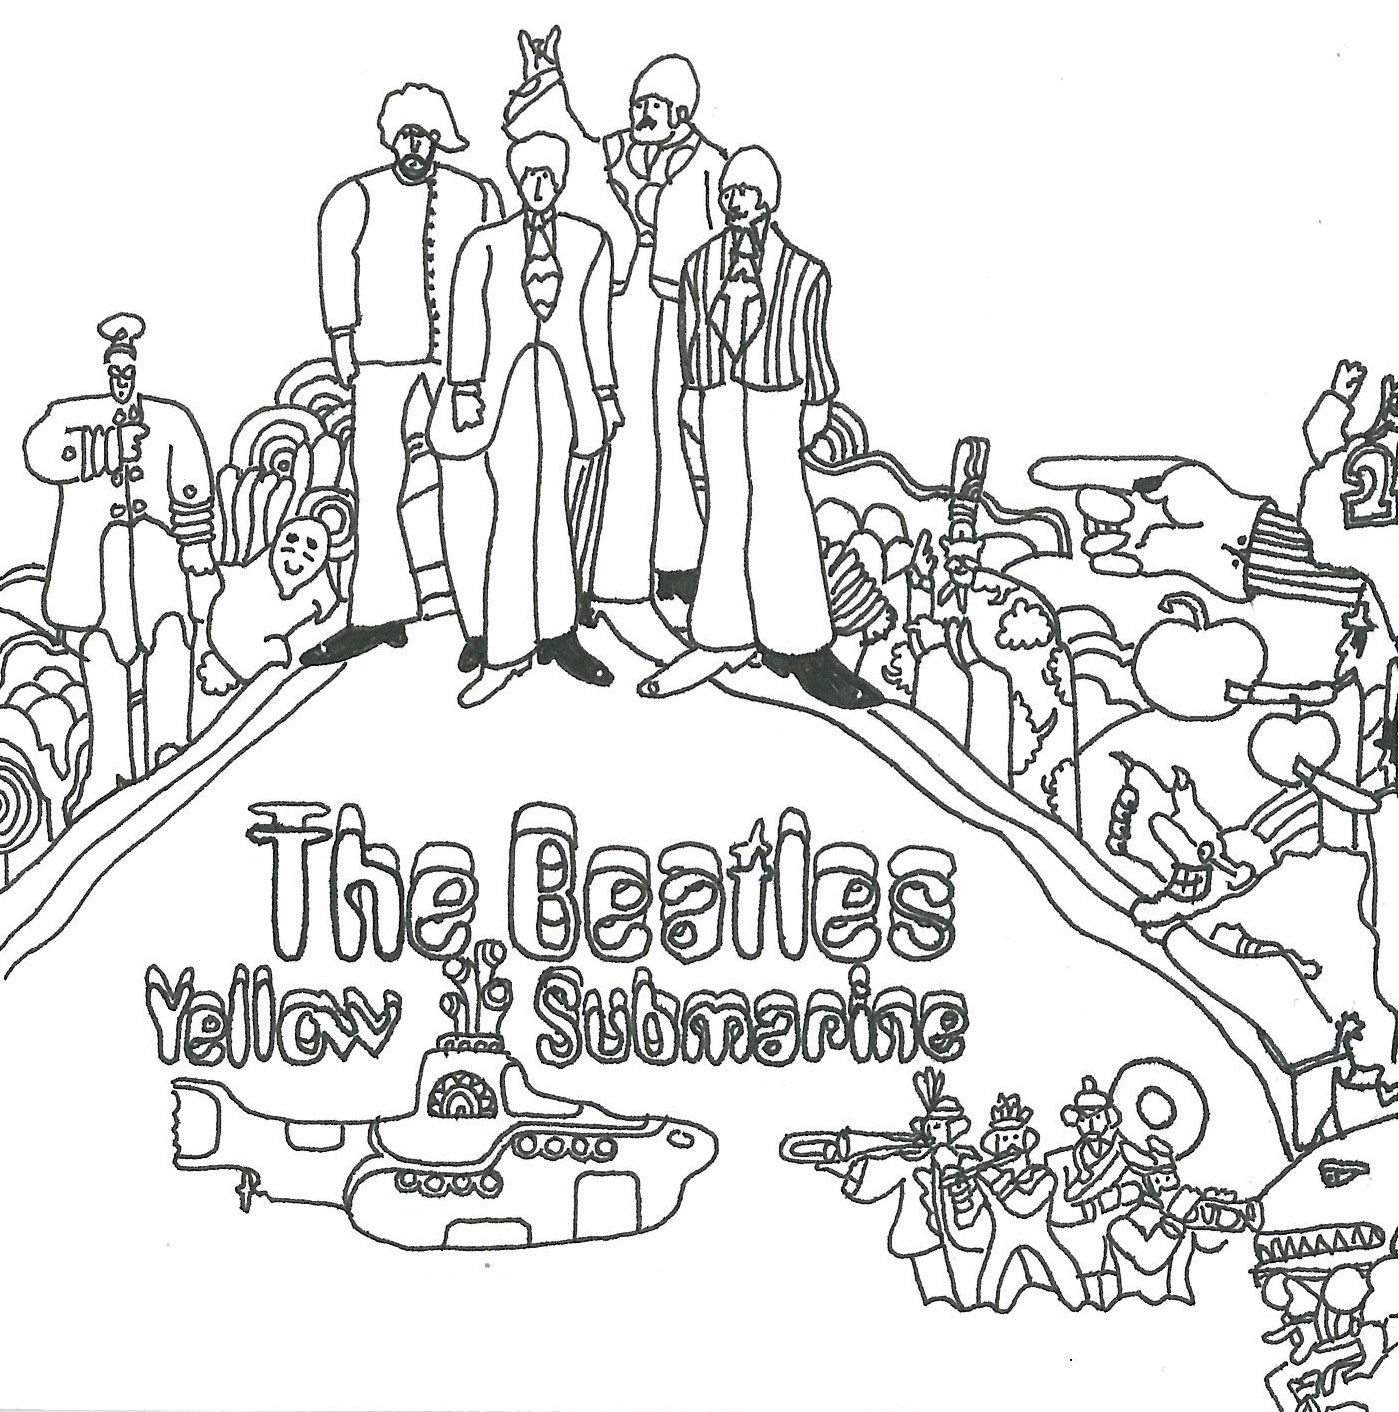 The Beatles Yellow Submarine Coloring Page